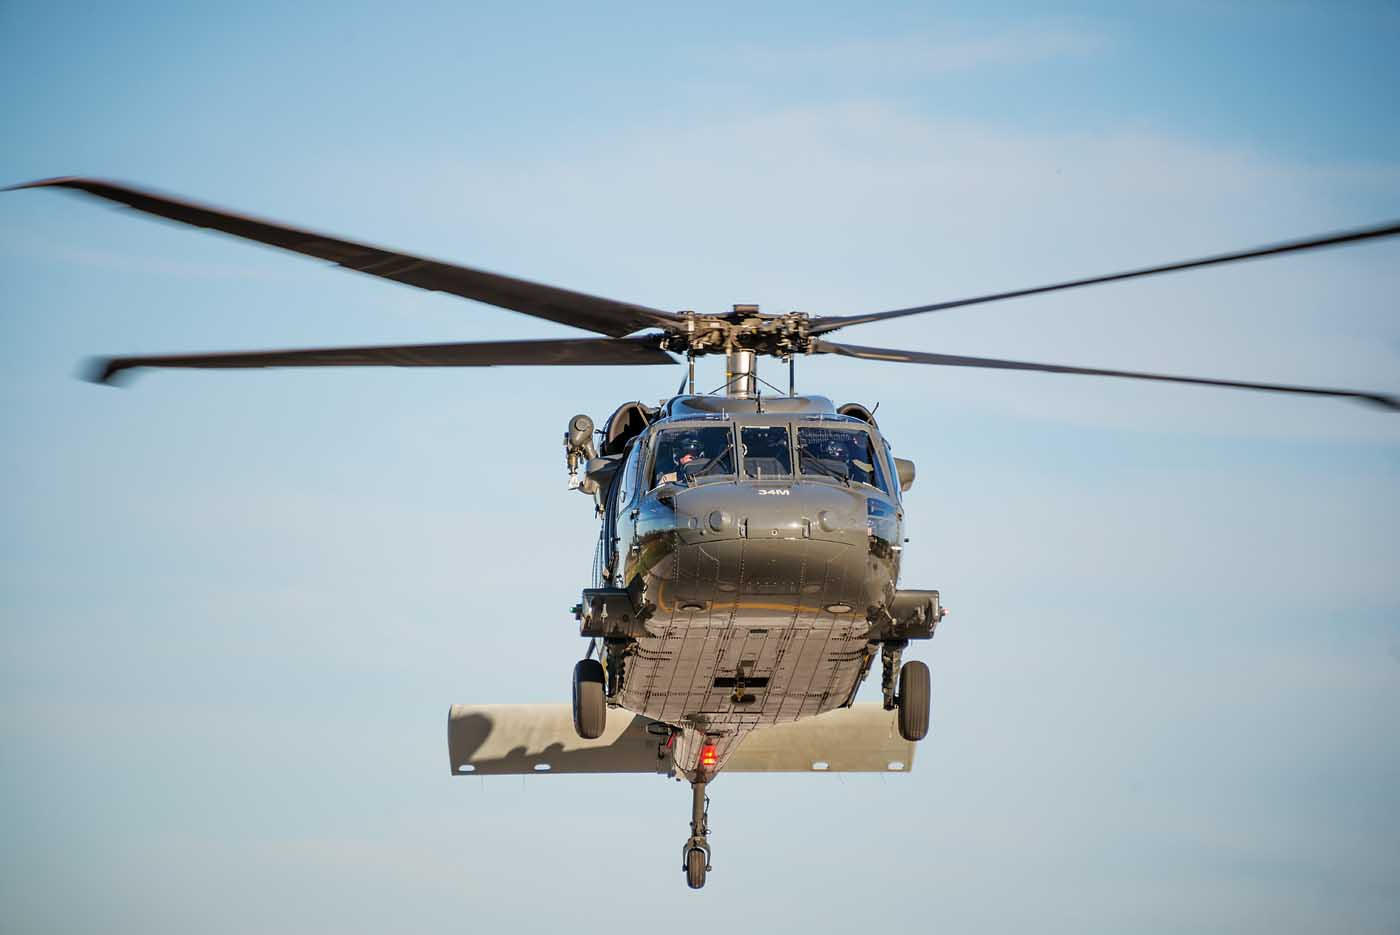 Over 1,100 UH-60M/S-70M/S-70i Black Hawks have been produced to date, primarily for military applications. Sikorsky now aims to see more S-70i Hawks in firefighting roles. Sikorsky Photo